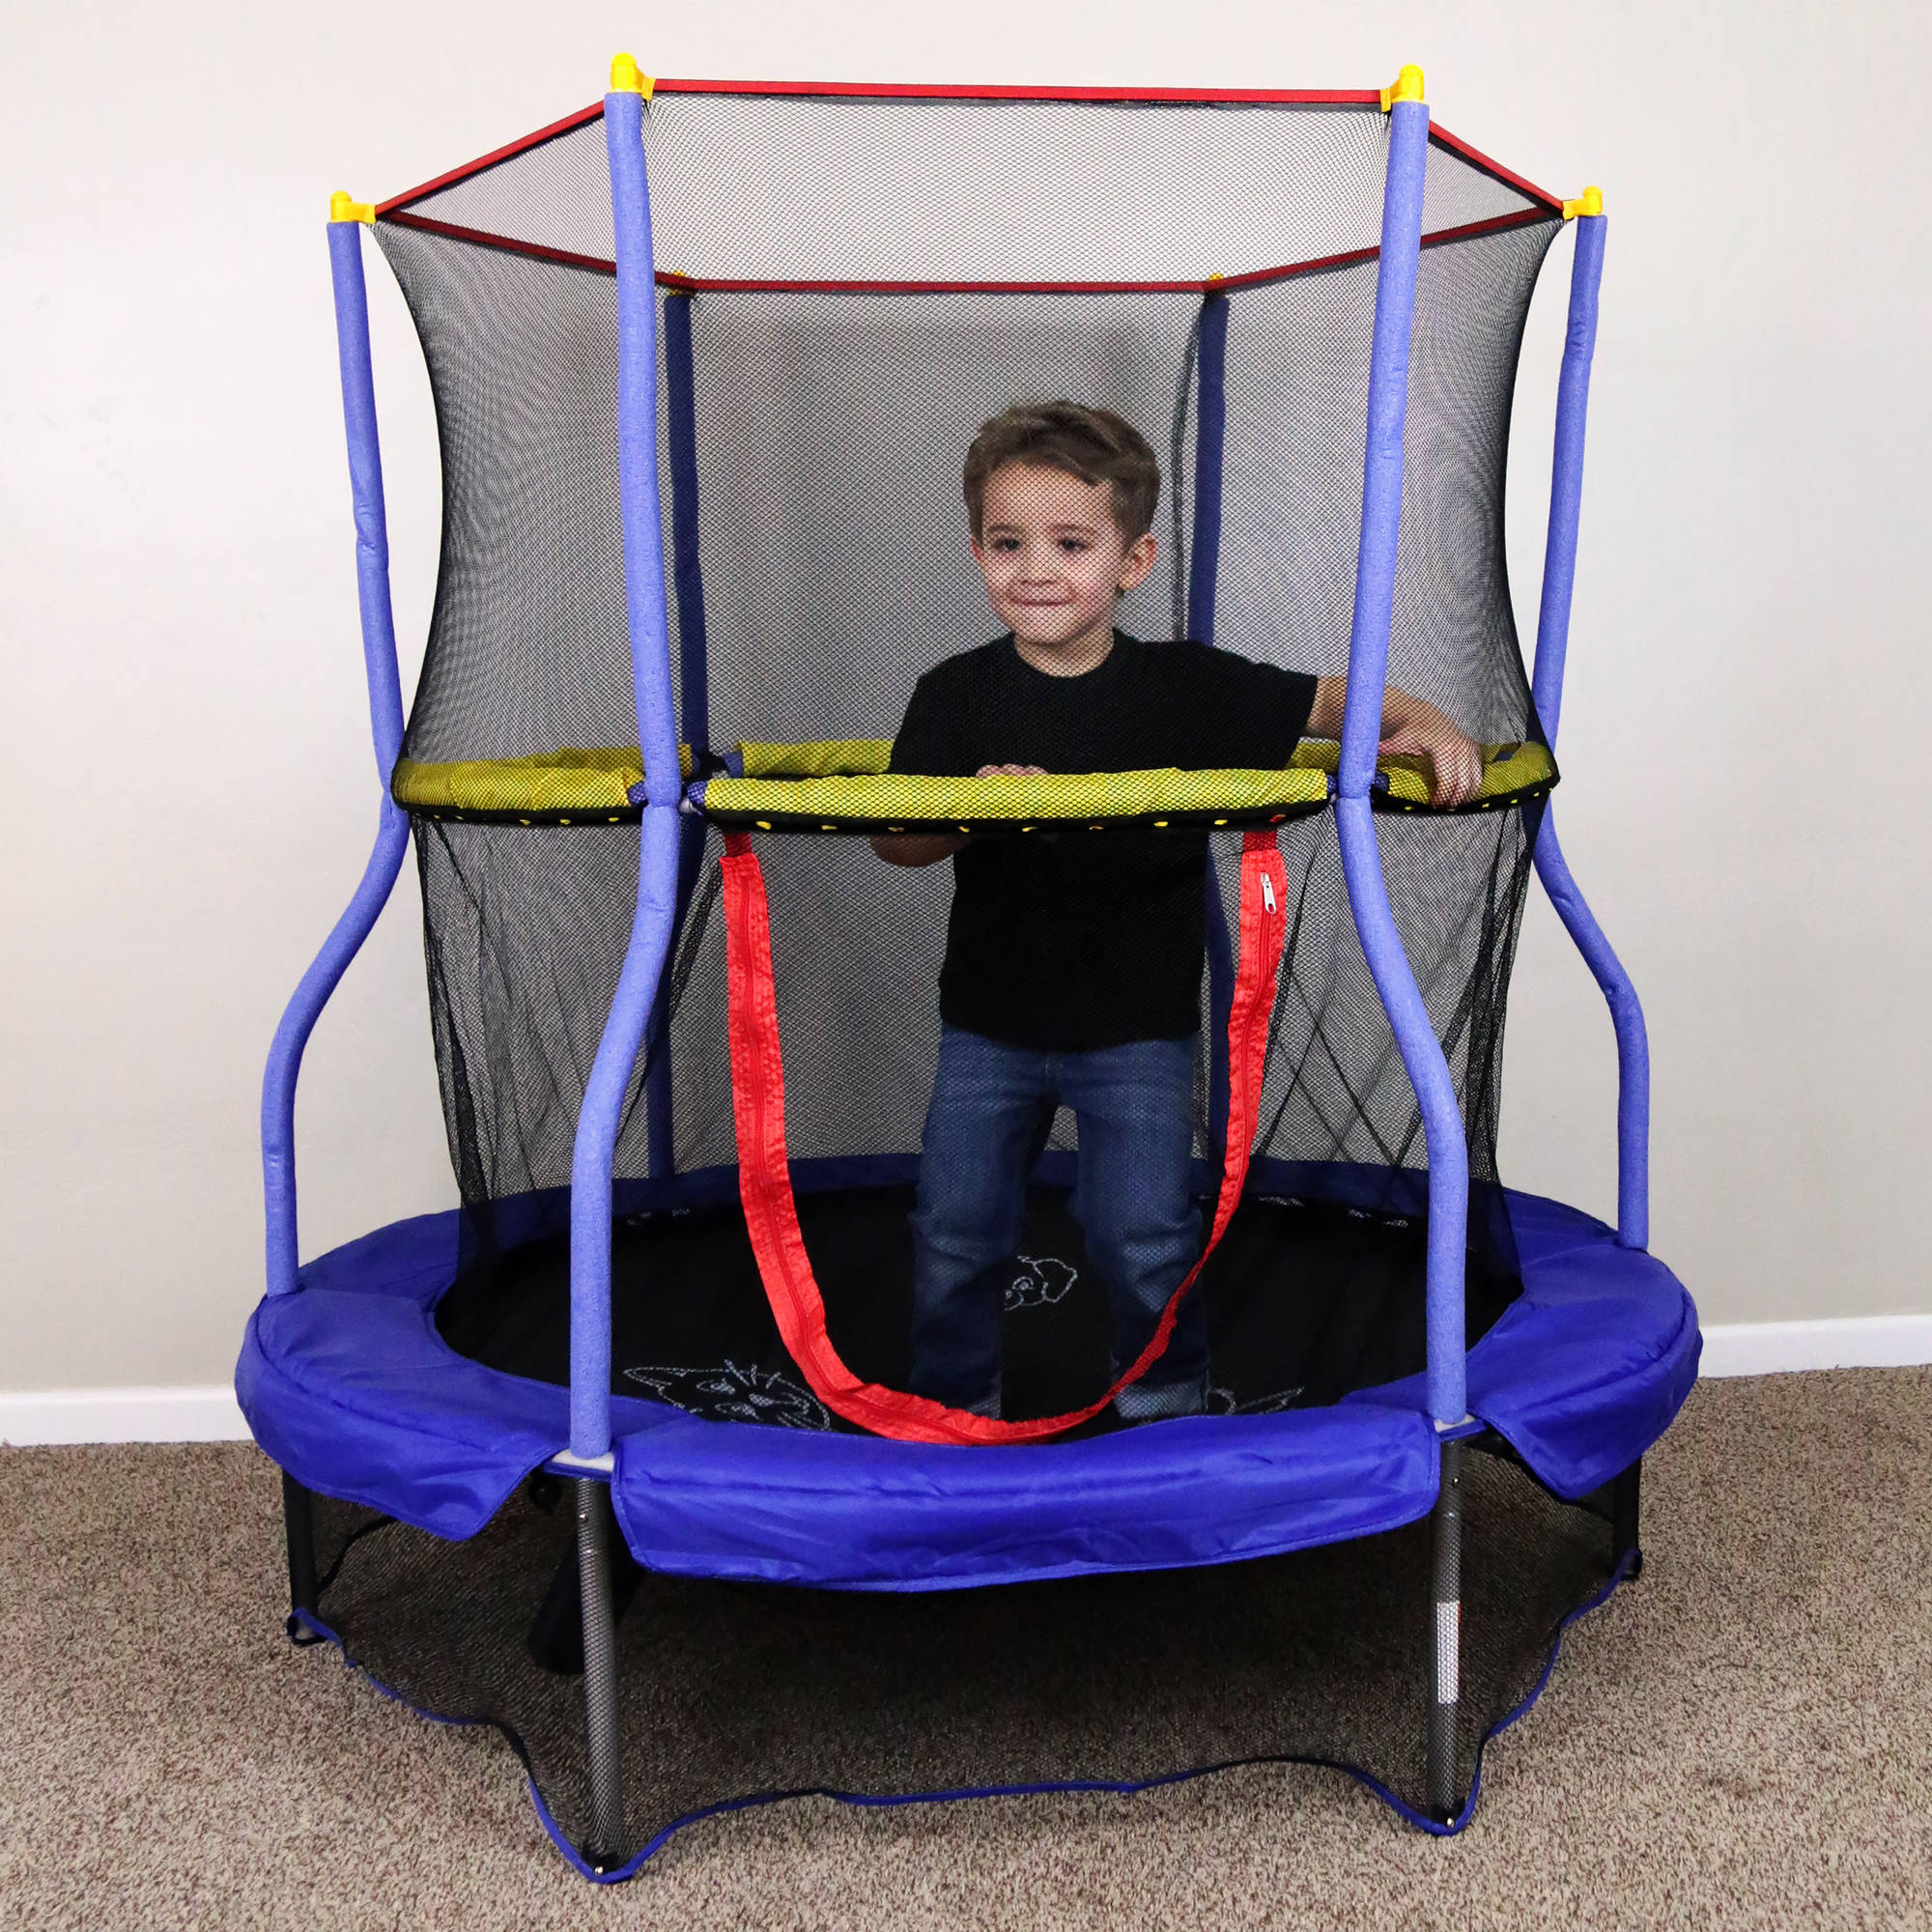 "Skywalker 55"" Round Bounce-n-Learn Interactive Game Trampoline"